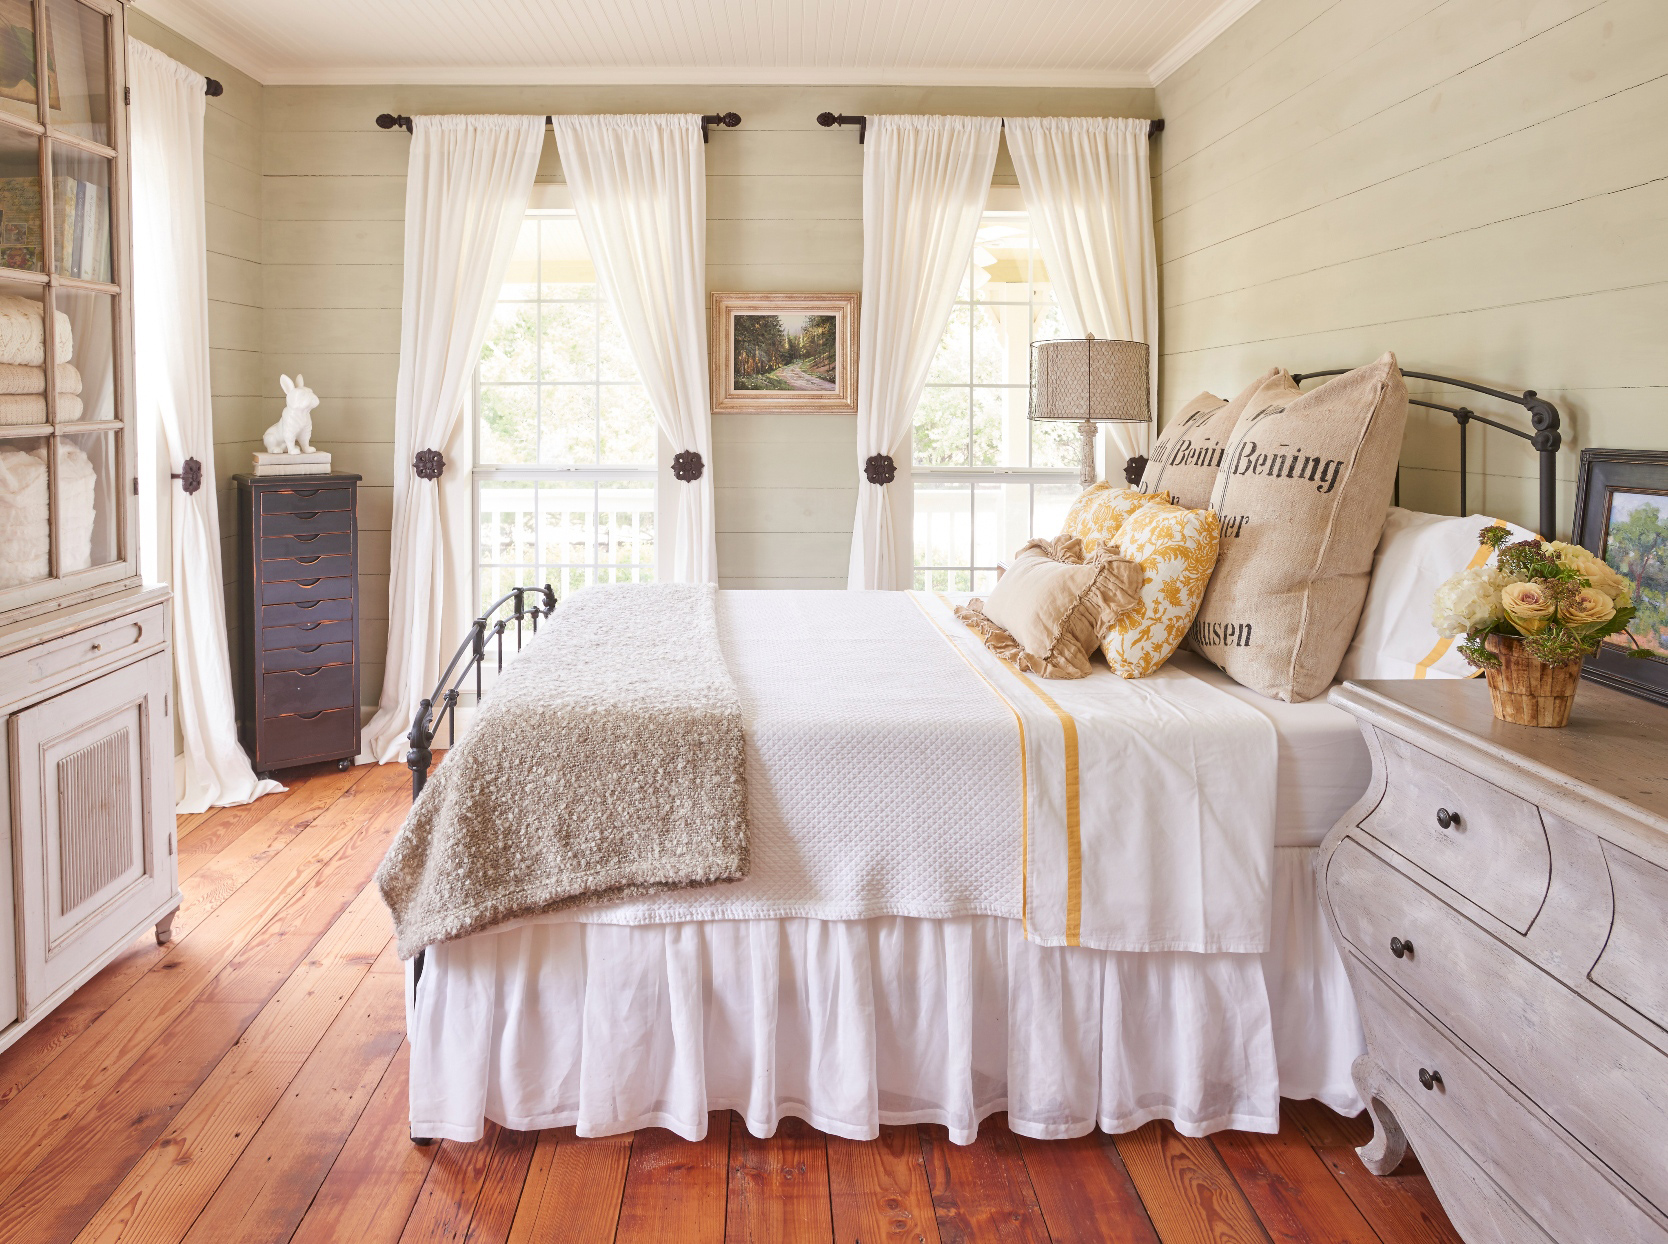 Interior of bedroom with blanket and pillows arranged on bed